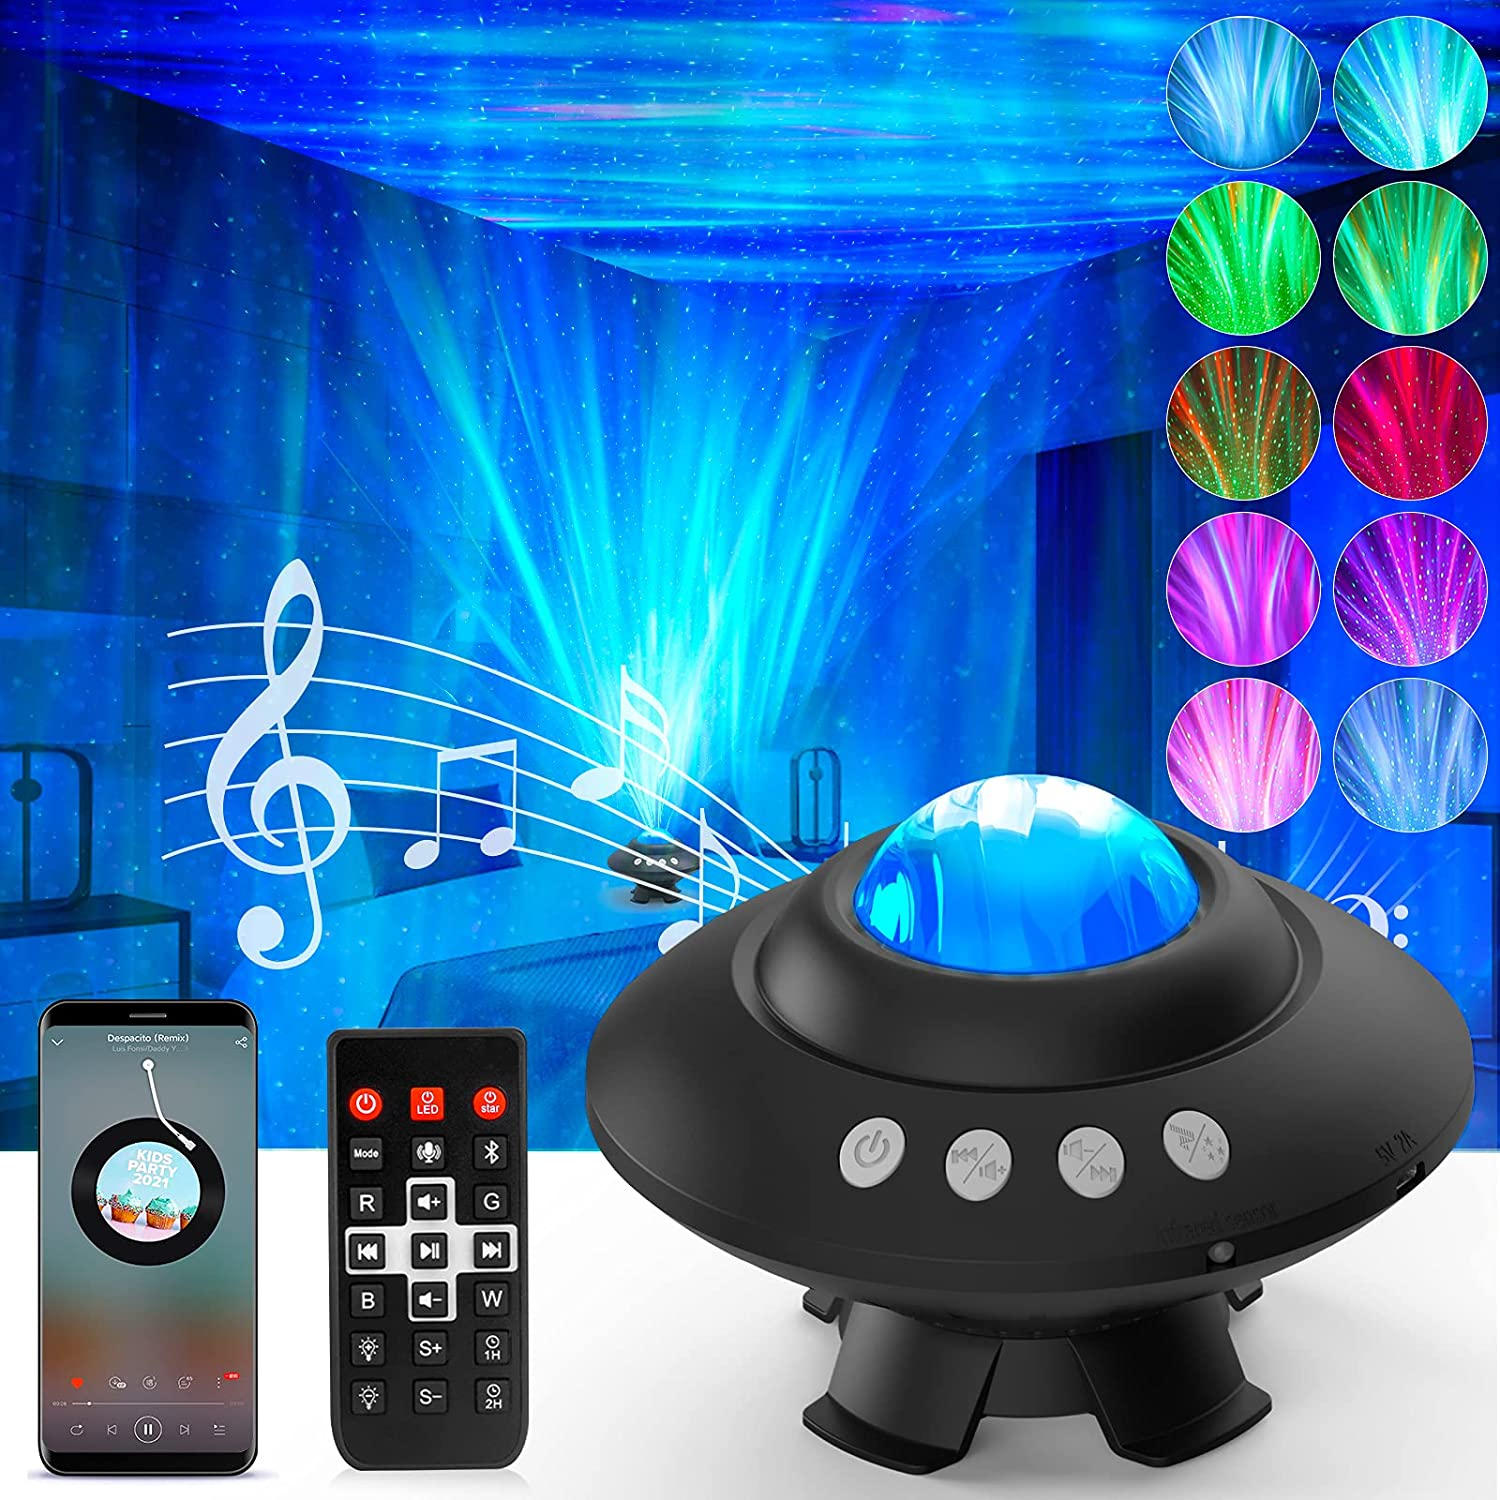 Be super welcome Star Projector Galaxy Max 88% OFF Bedro Light for